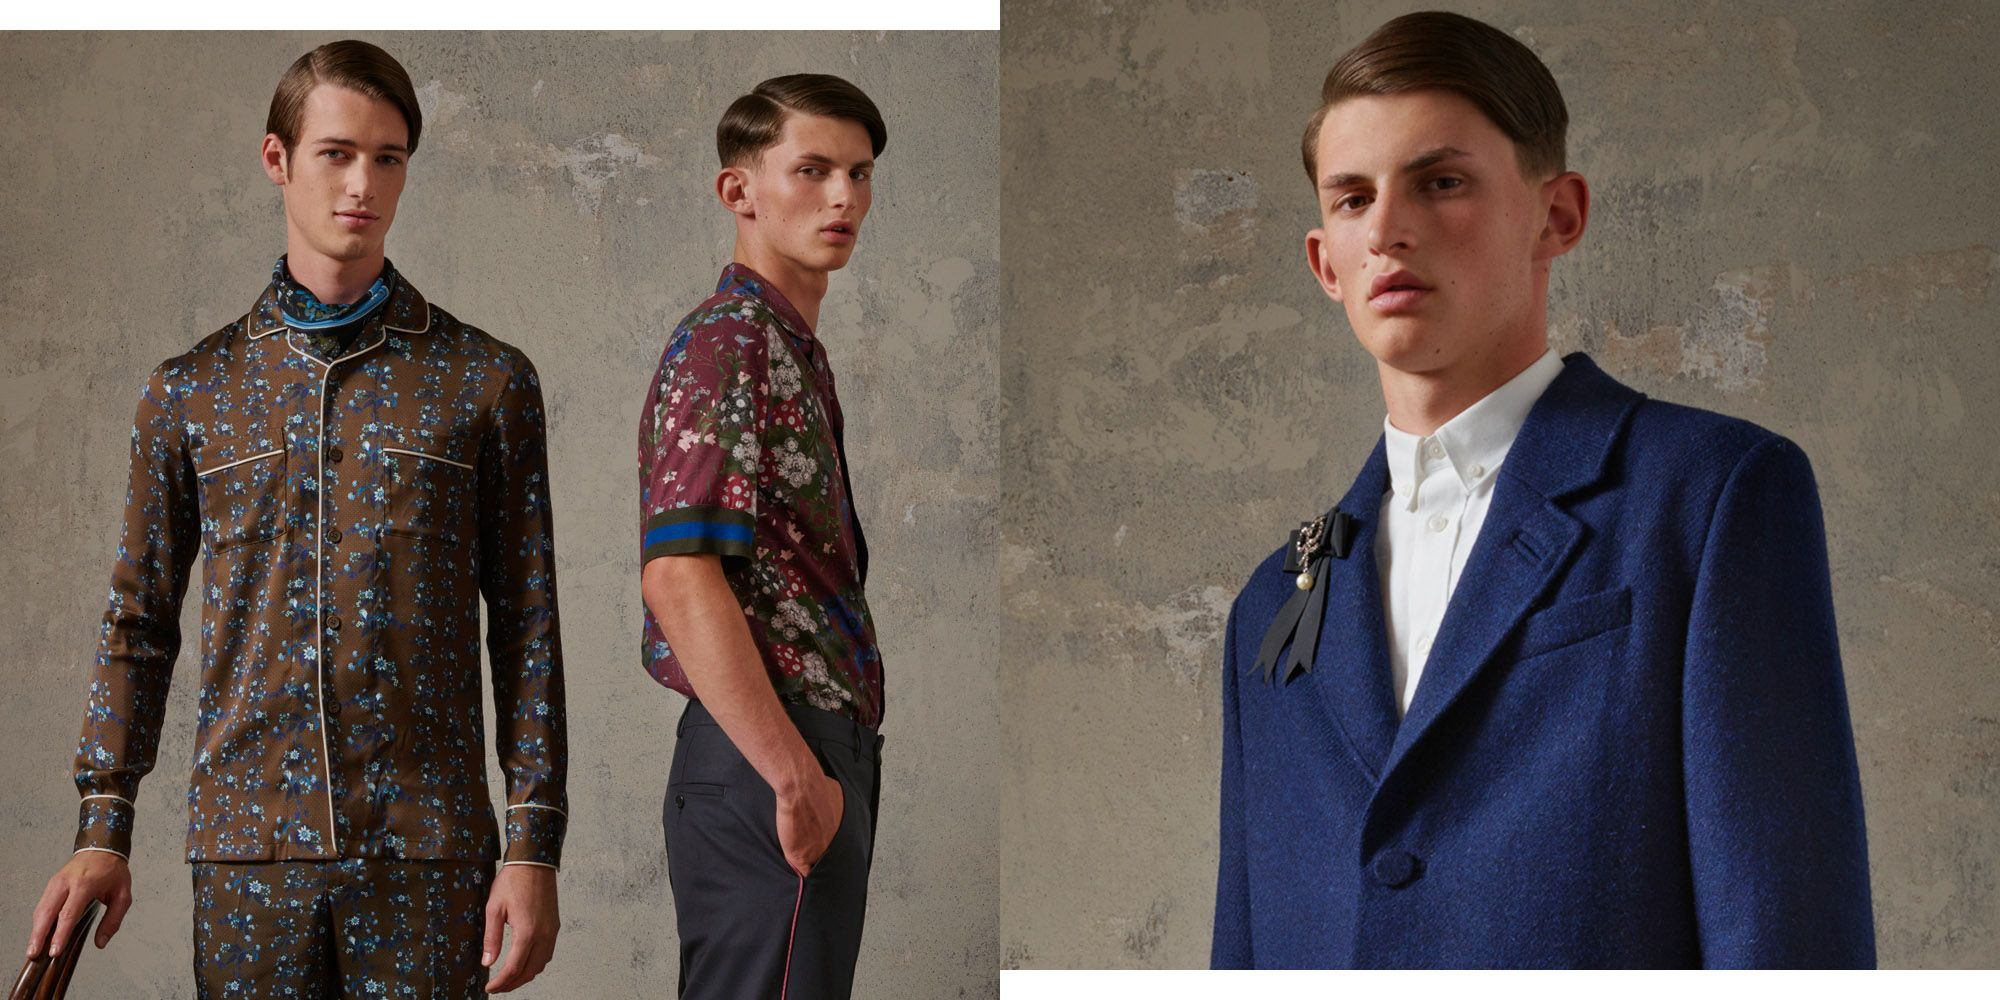 H&M x Erdem is the Affordable High Fashion We Need